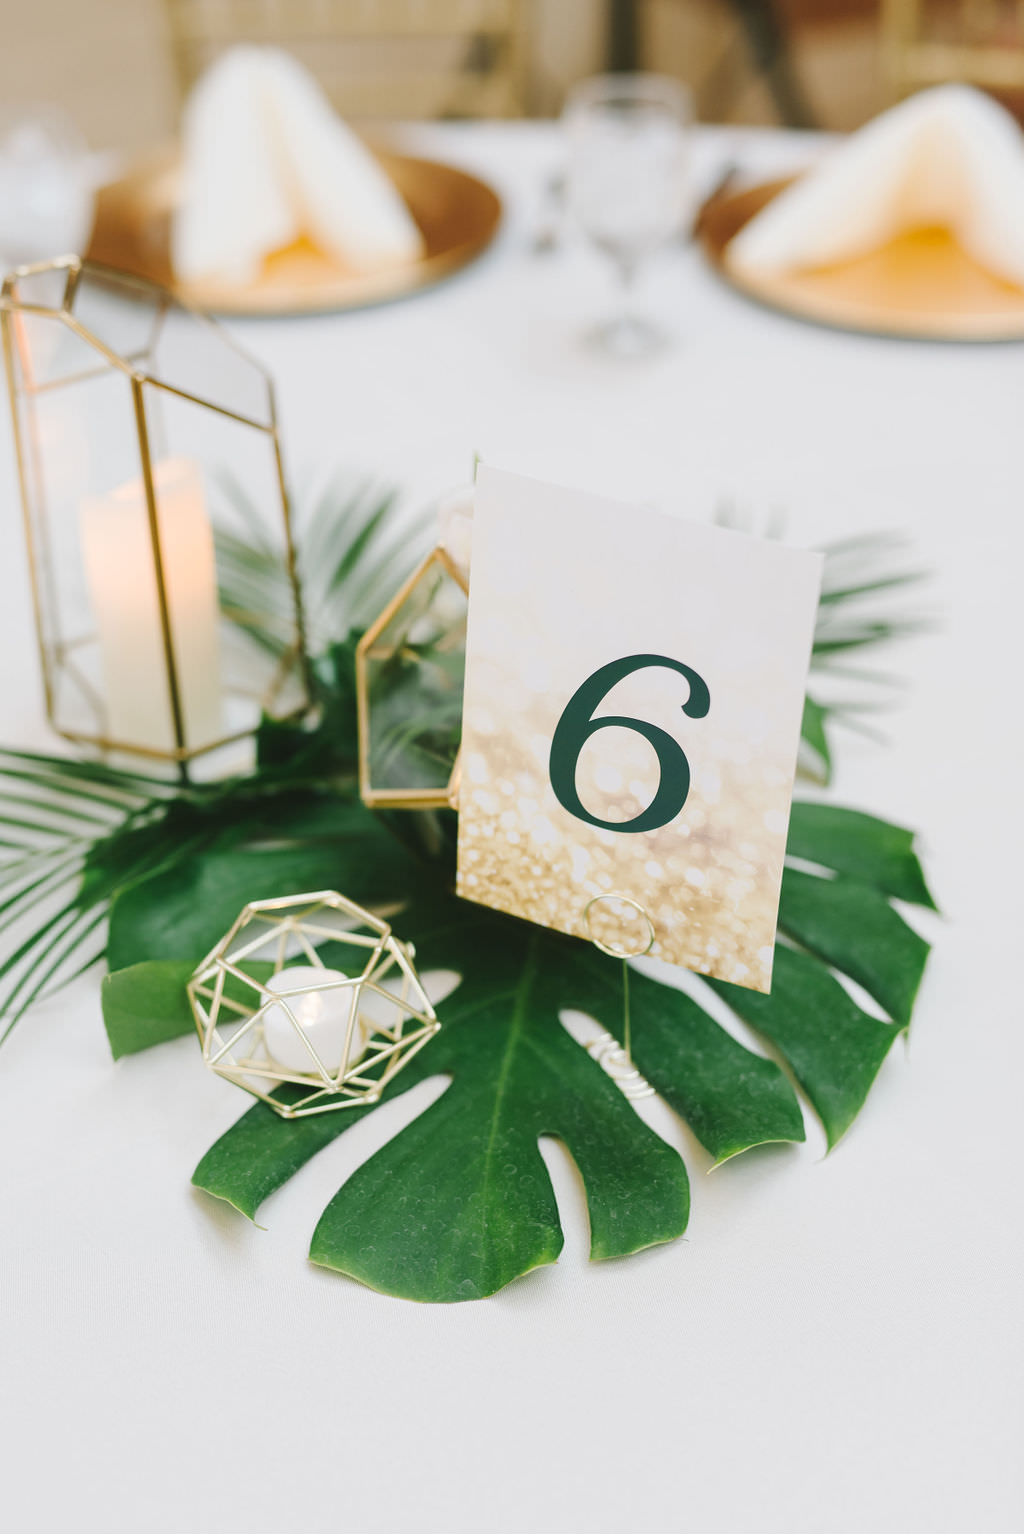 Modern Tropical Classic Wedding Reception Decor, Monstera Palm Tree Leaf Centerpiece with Geometric Candle Holders, White and Gold Cardstock Table Number   Wedding Photographer Kera Photography